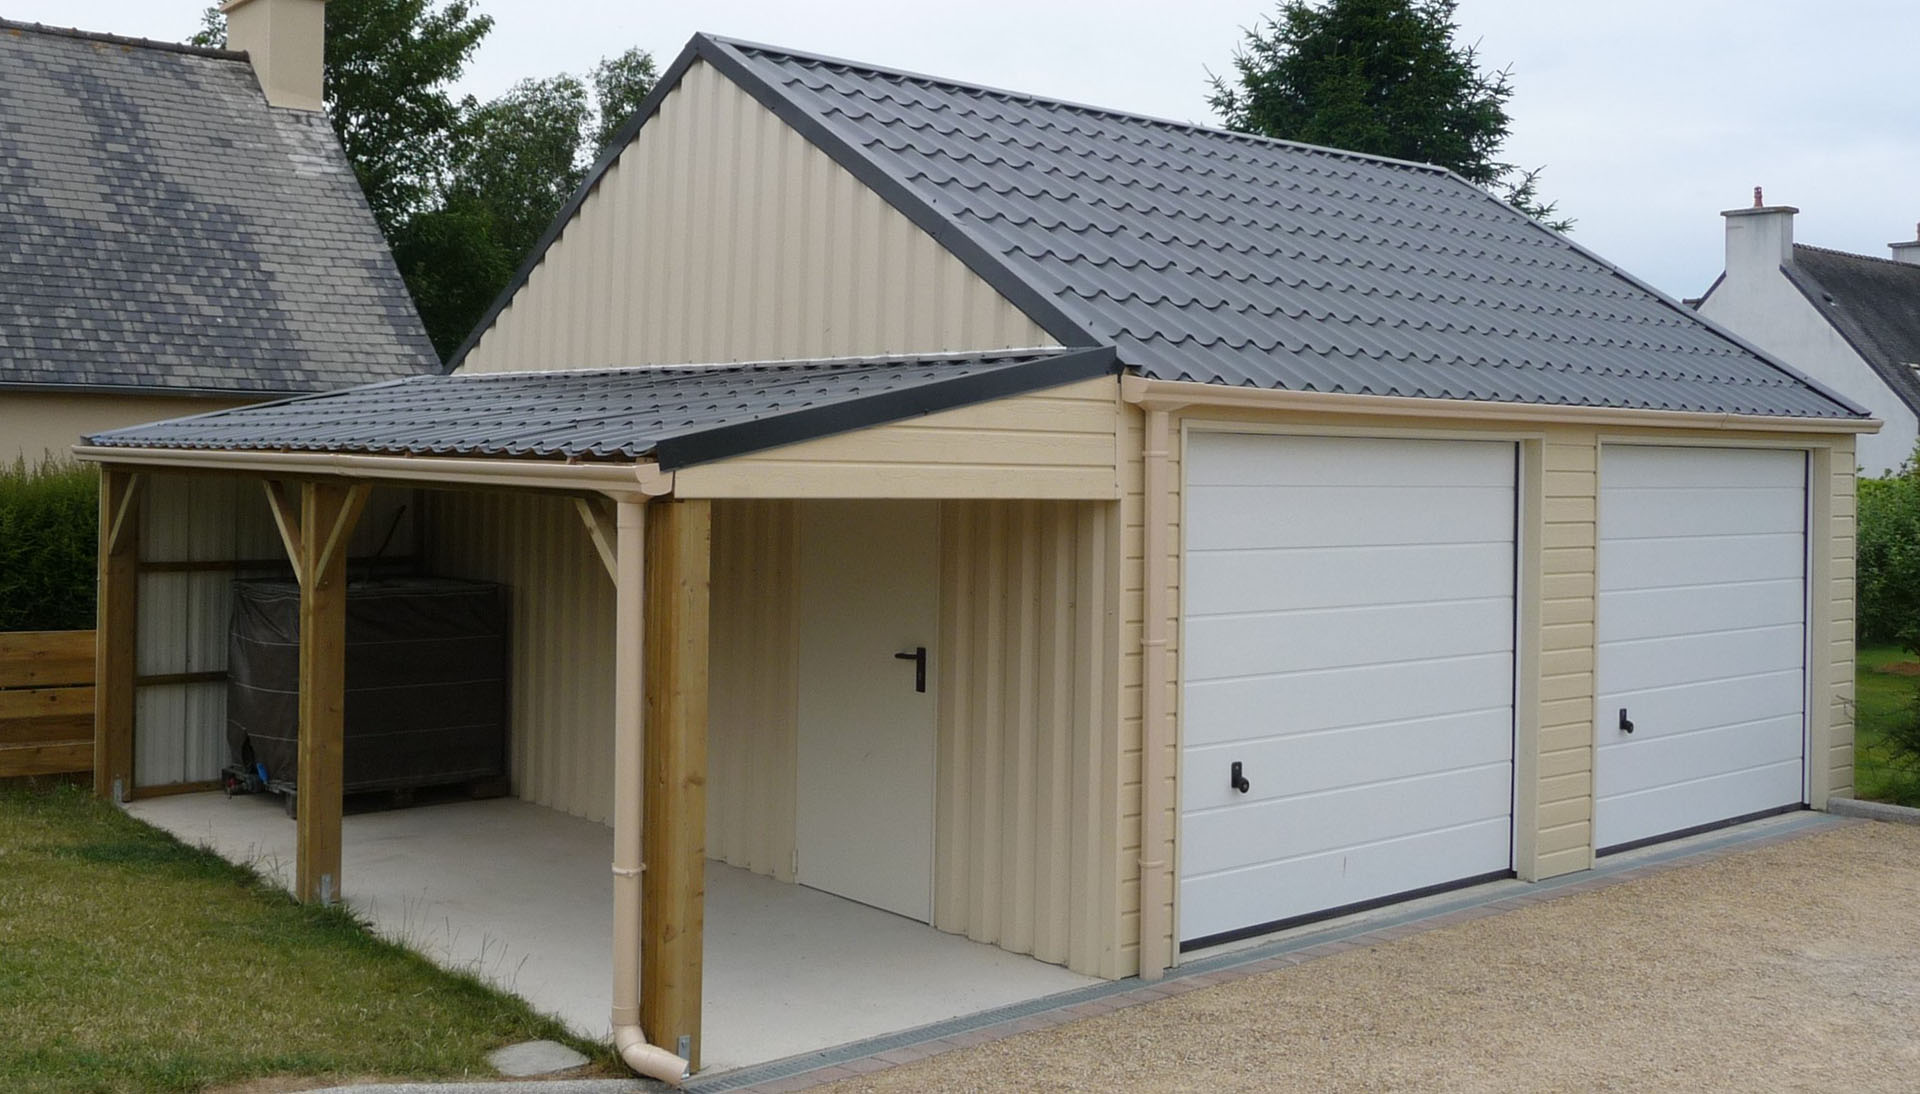 Garage sur mesure en bretagne for Imposition garage ou abri de jardin